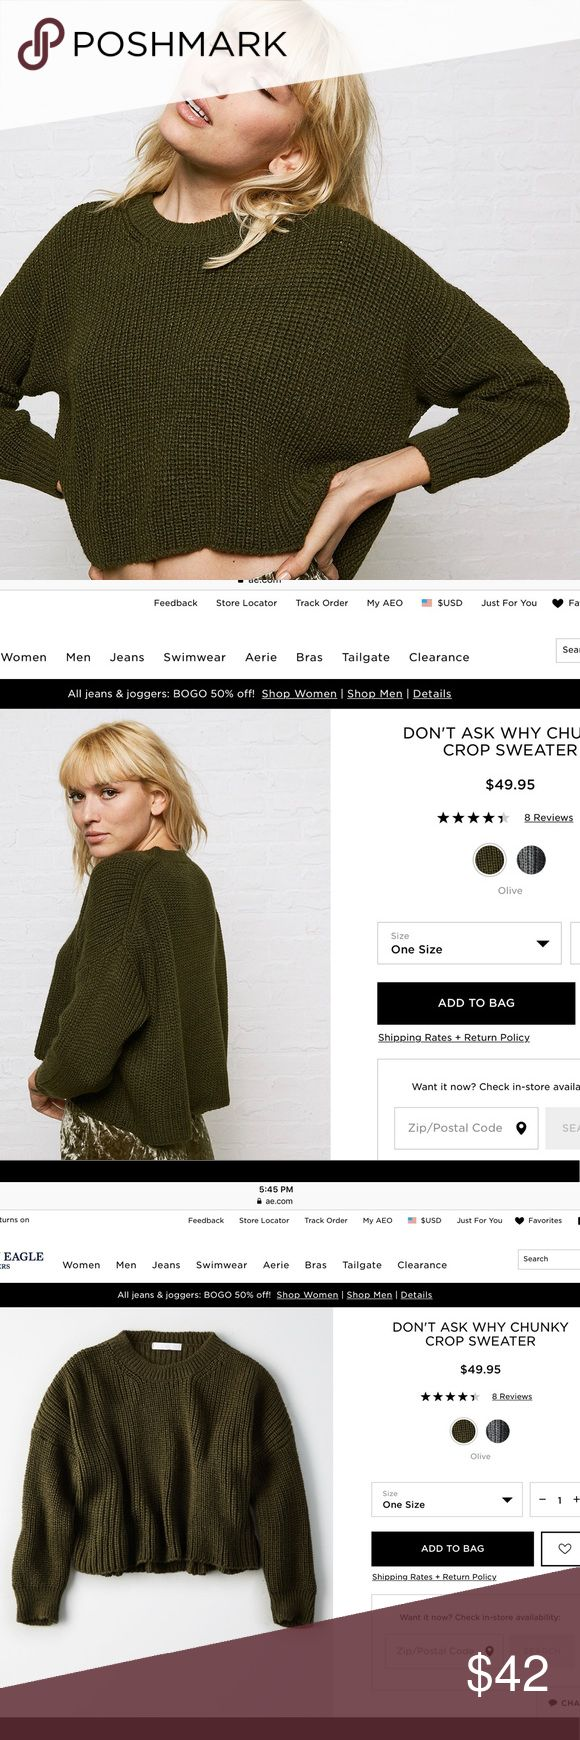 """NWT American Eagle Chunky Crop Sweater Olive Green American Eagle """"Don't Ask Why Chunky Crop Sweater"""" in Olive Green One Size Fits All, Never been worn. As of today's date Jan 27th can still be purchased online at AE for full price $49.95. Purchased online on sale but waited too long to return.   Only selling because its personally a little to cropped for my liking. Price is firm. American Eagle Outfitters Sweaters"""